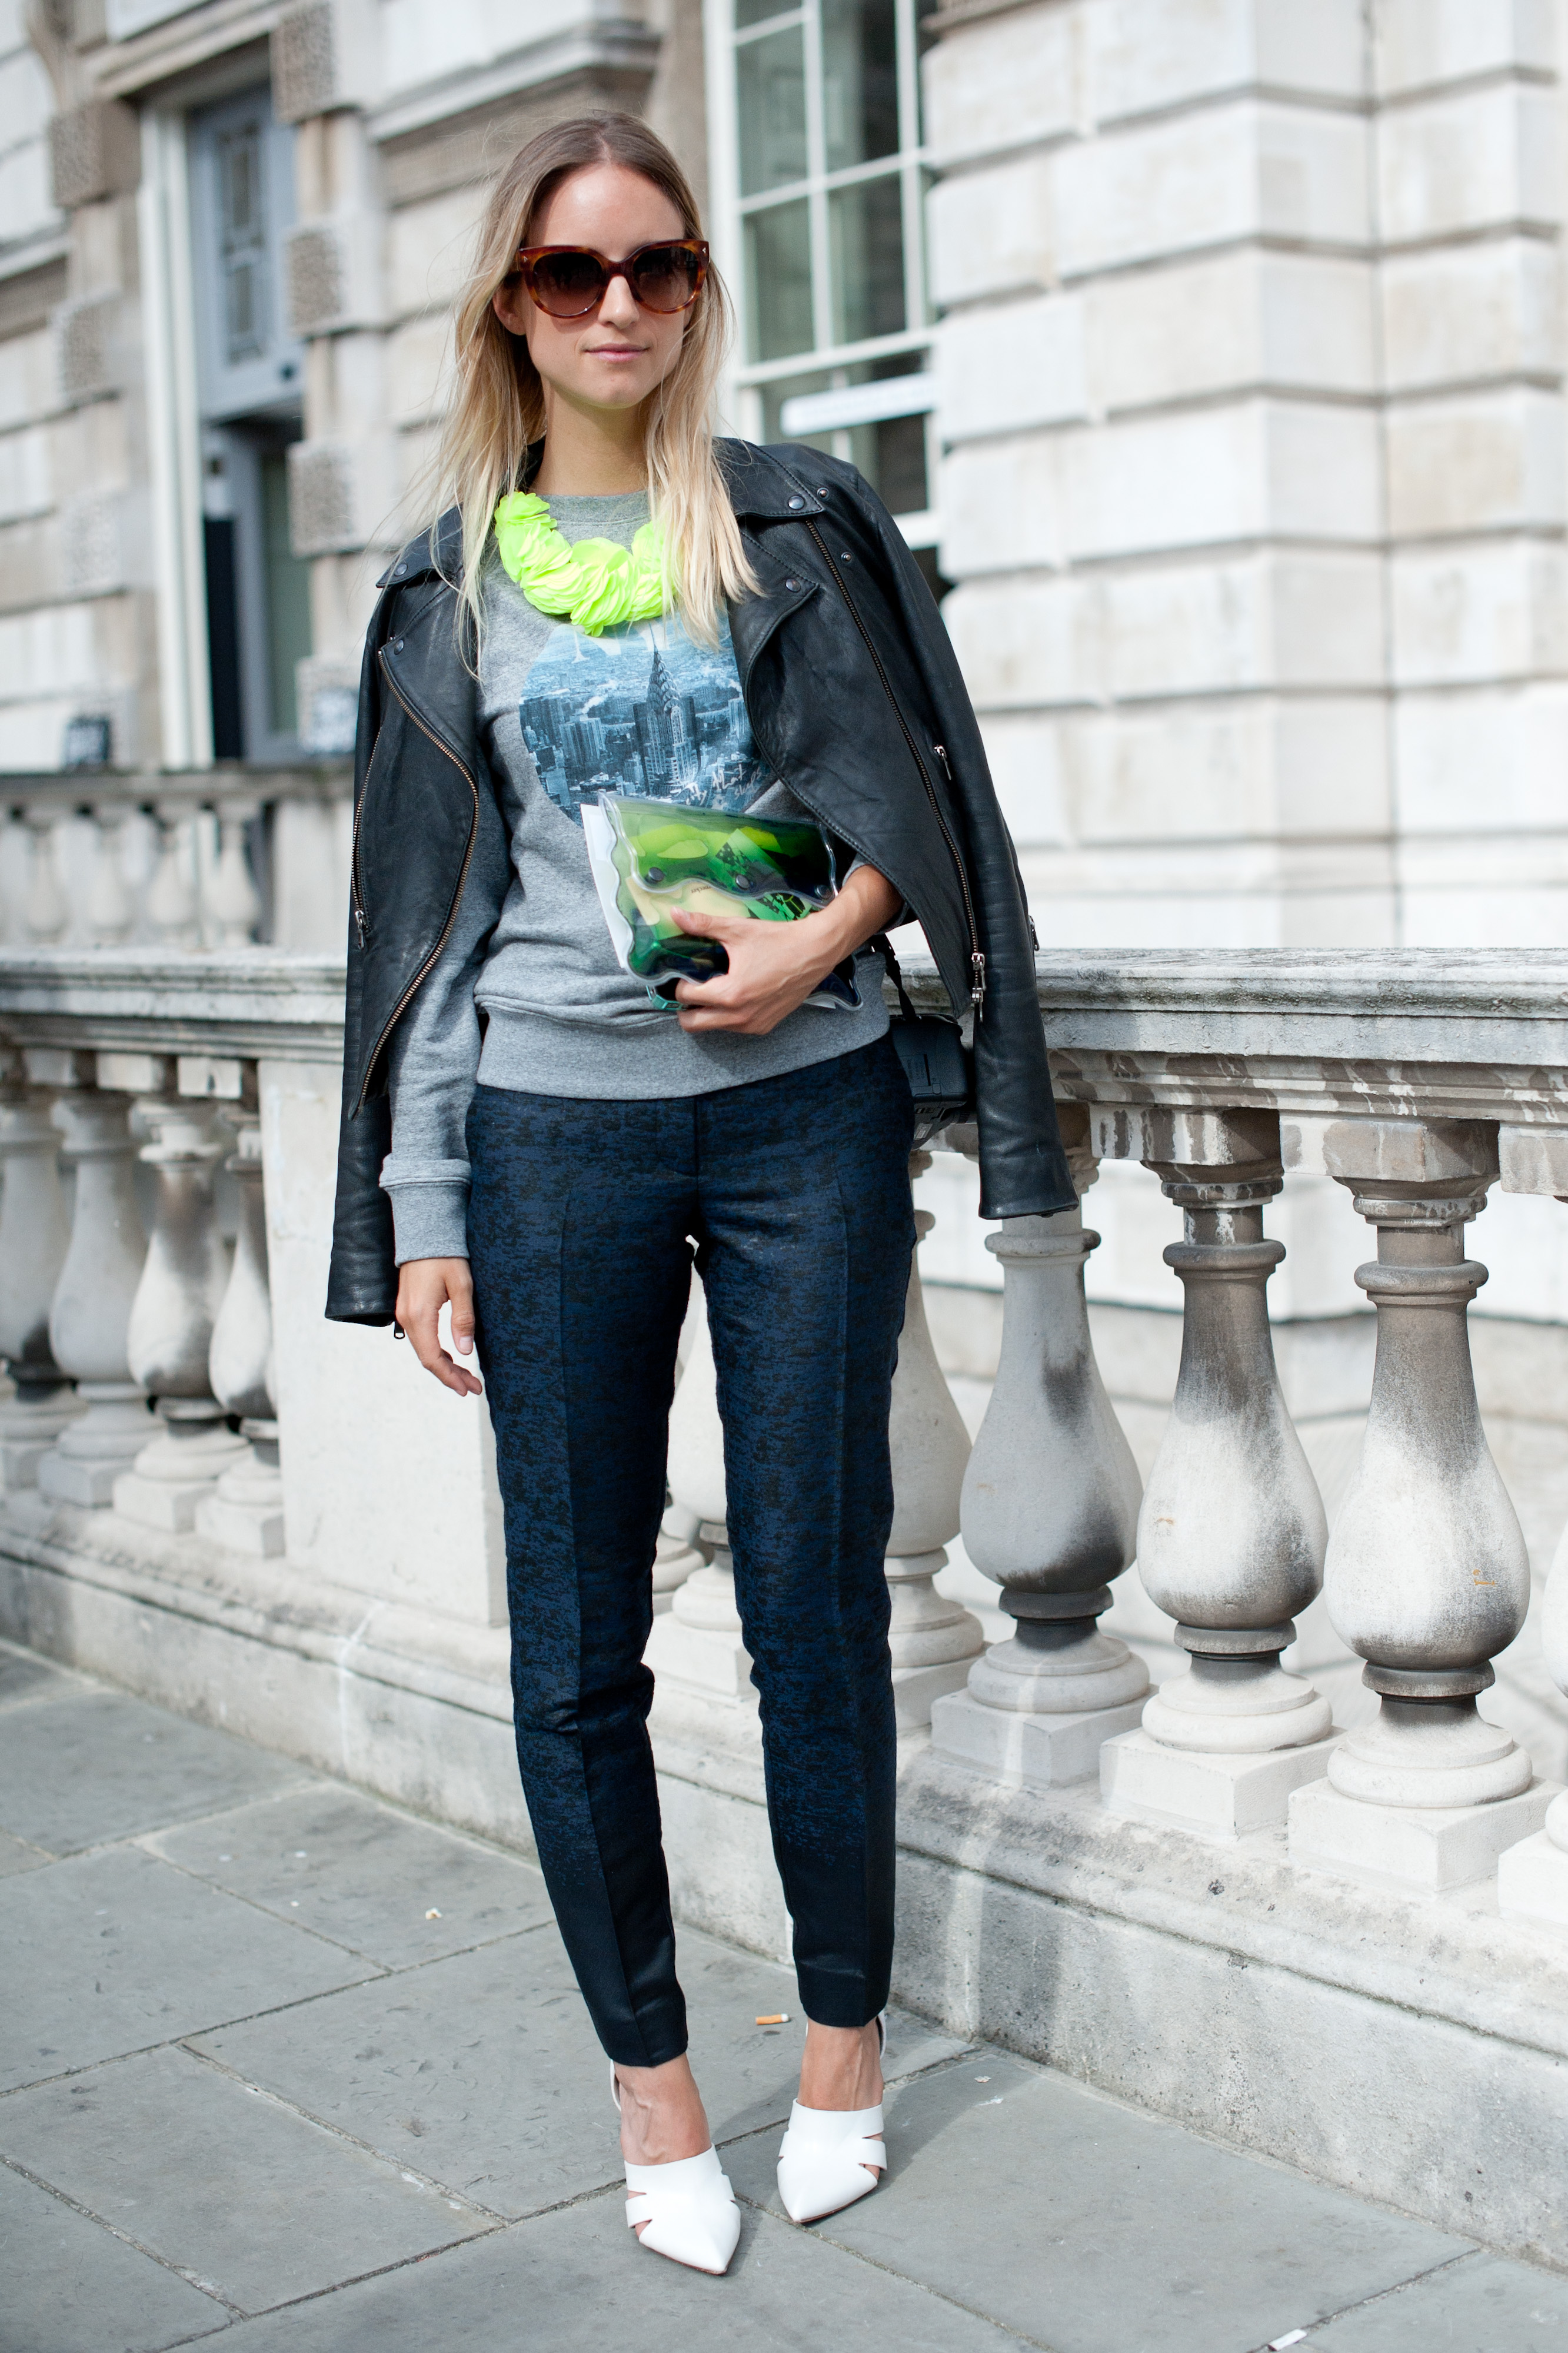 We're more than just a little impressed by this style setter's take on high-low dressing. Case in point: she styled up an H&M sweater-and-pants combo with a neon H&M necklace, Christopher Kane clutch, Prada sunglasses, and white Alexander Wang heels.